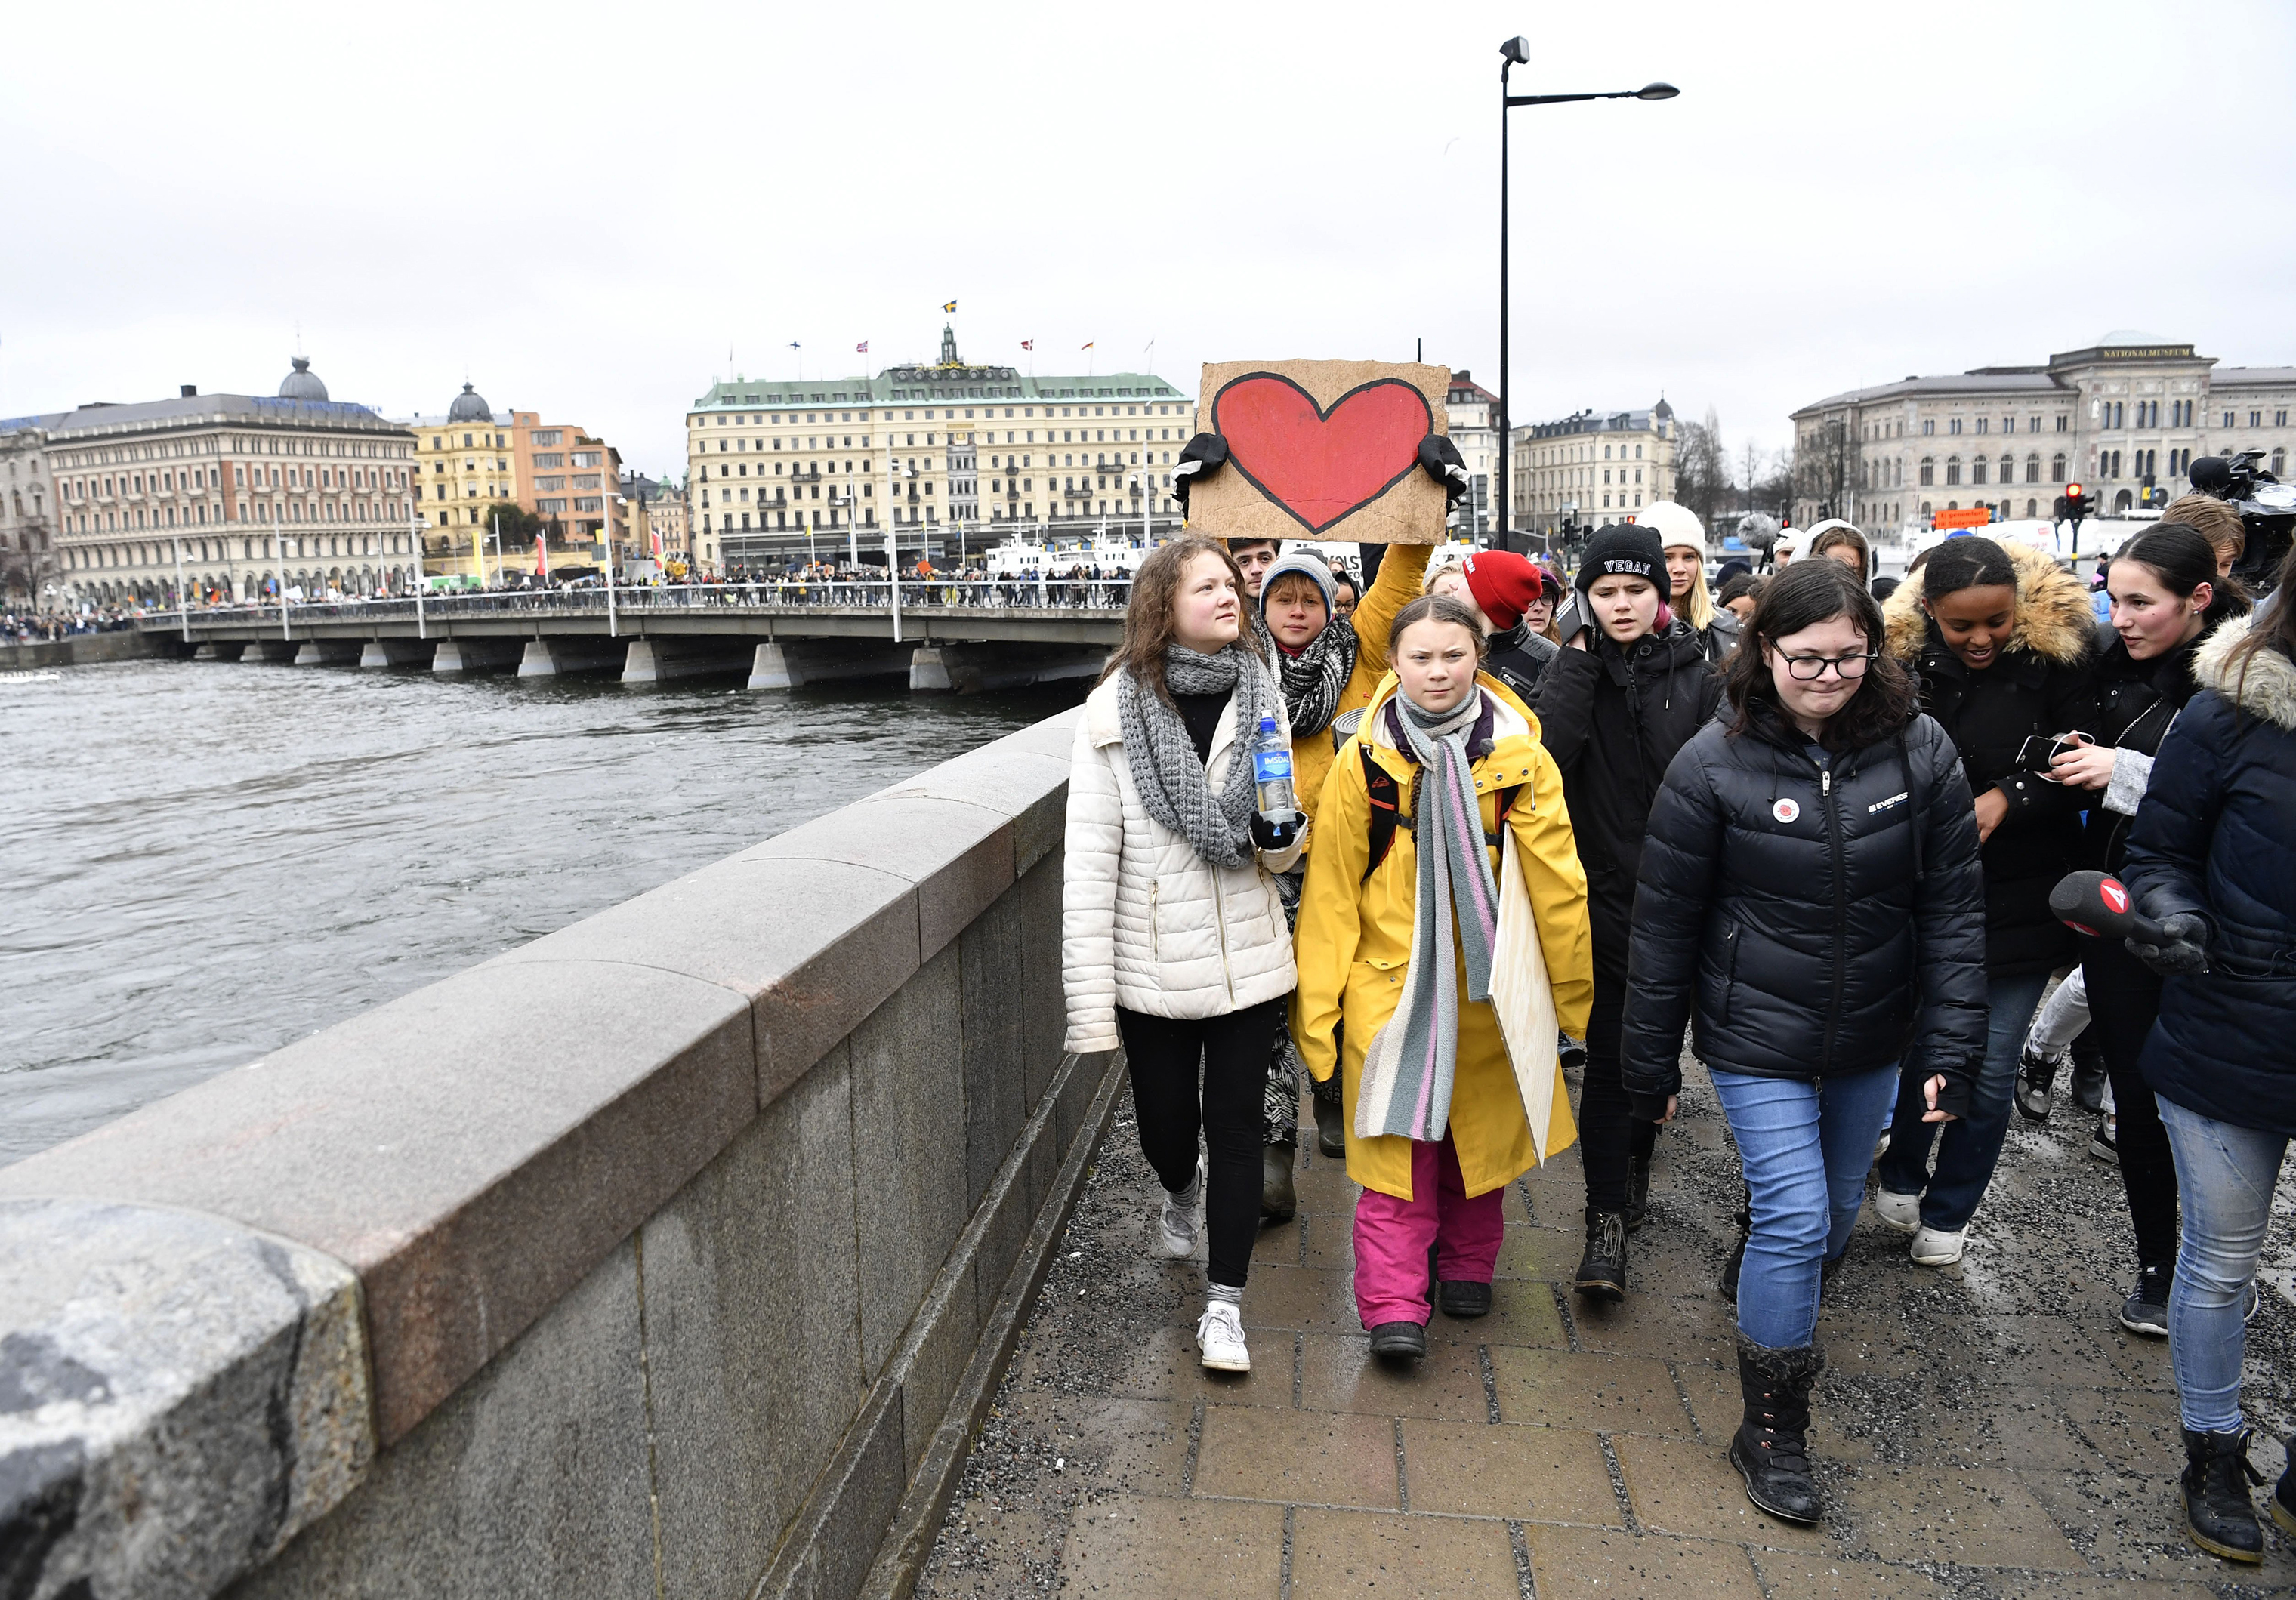 Activist Greta Thunberg, foreground centre, and her sister Beata Thunberg, left, participate in a climate protest, in central Stockholm, Sweden, on March 15, 2019.